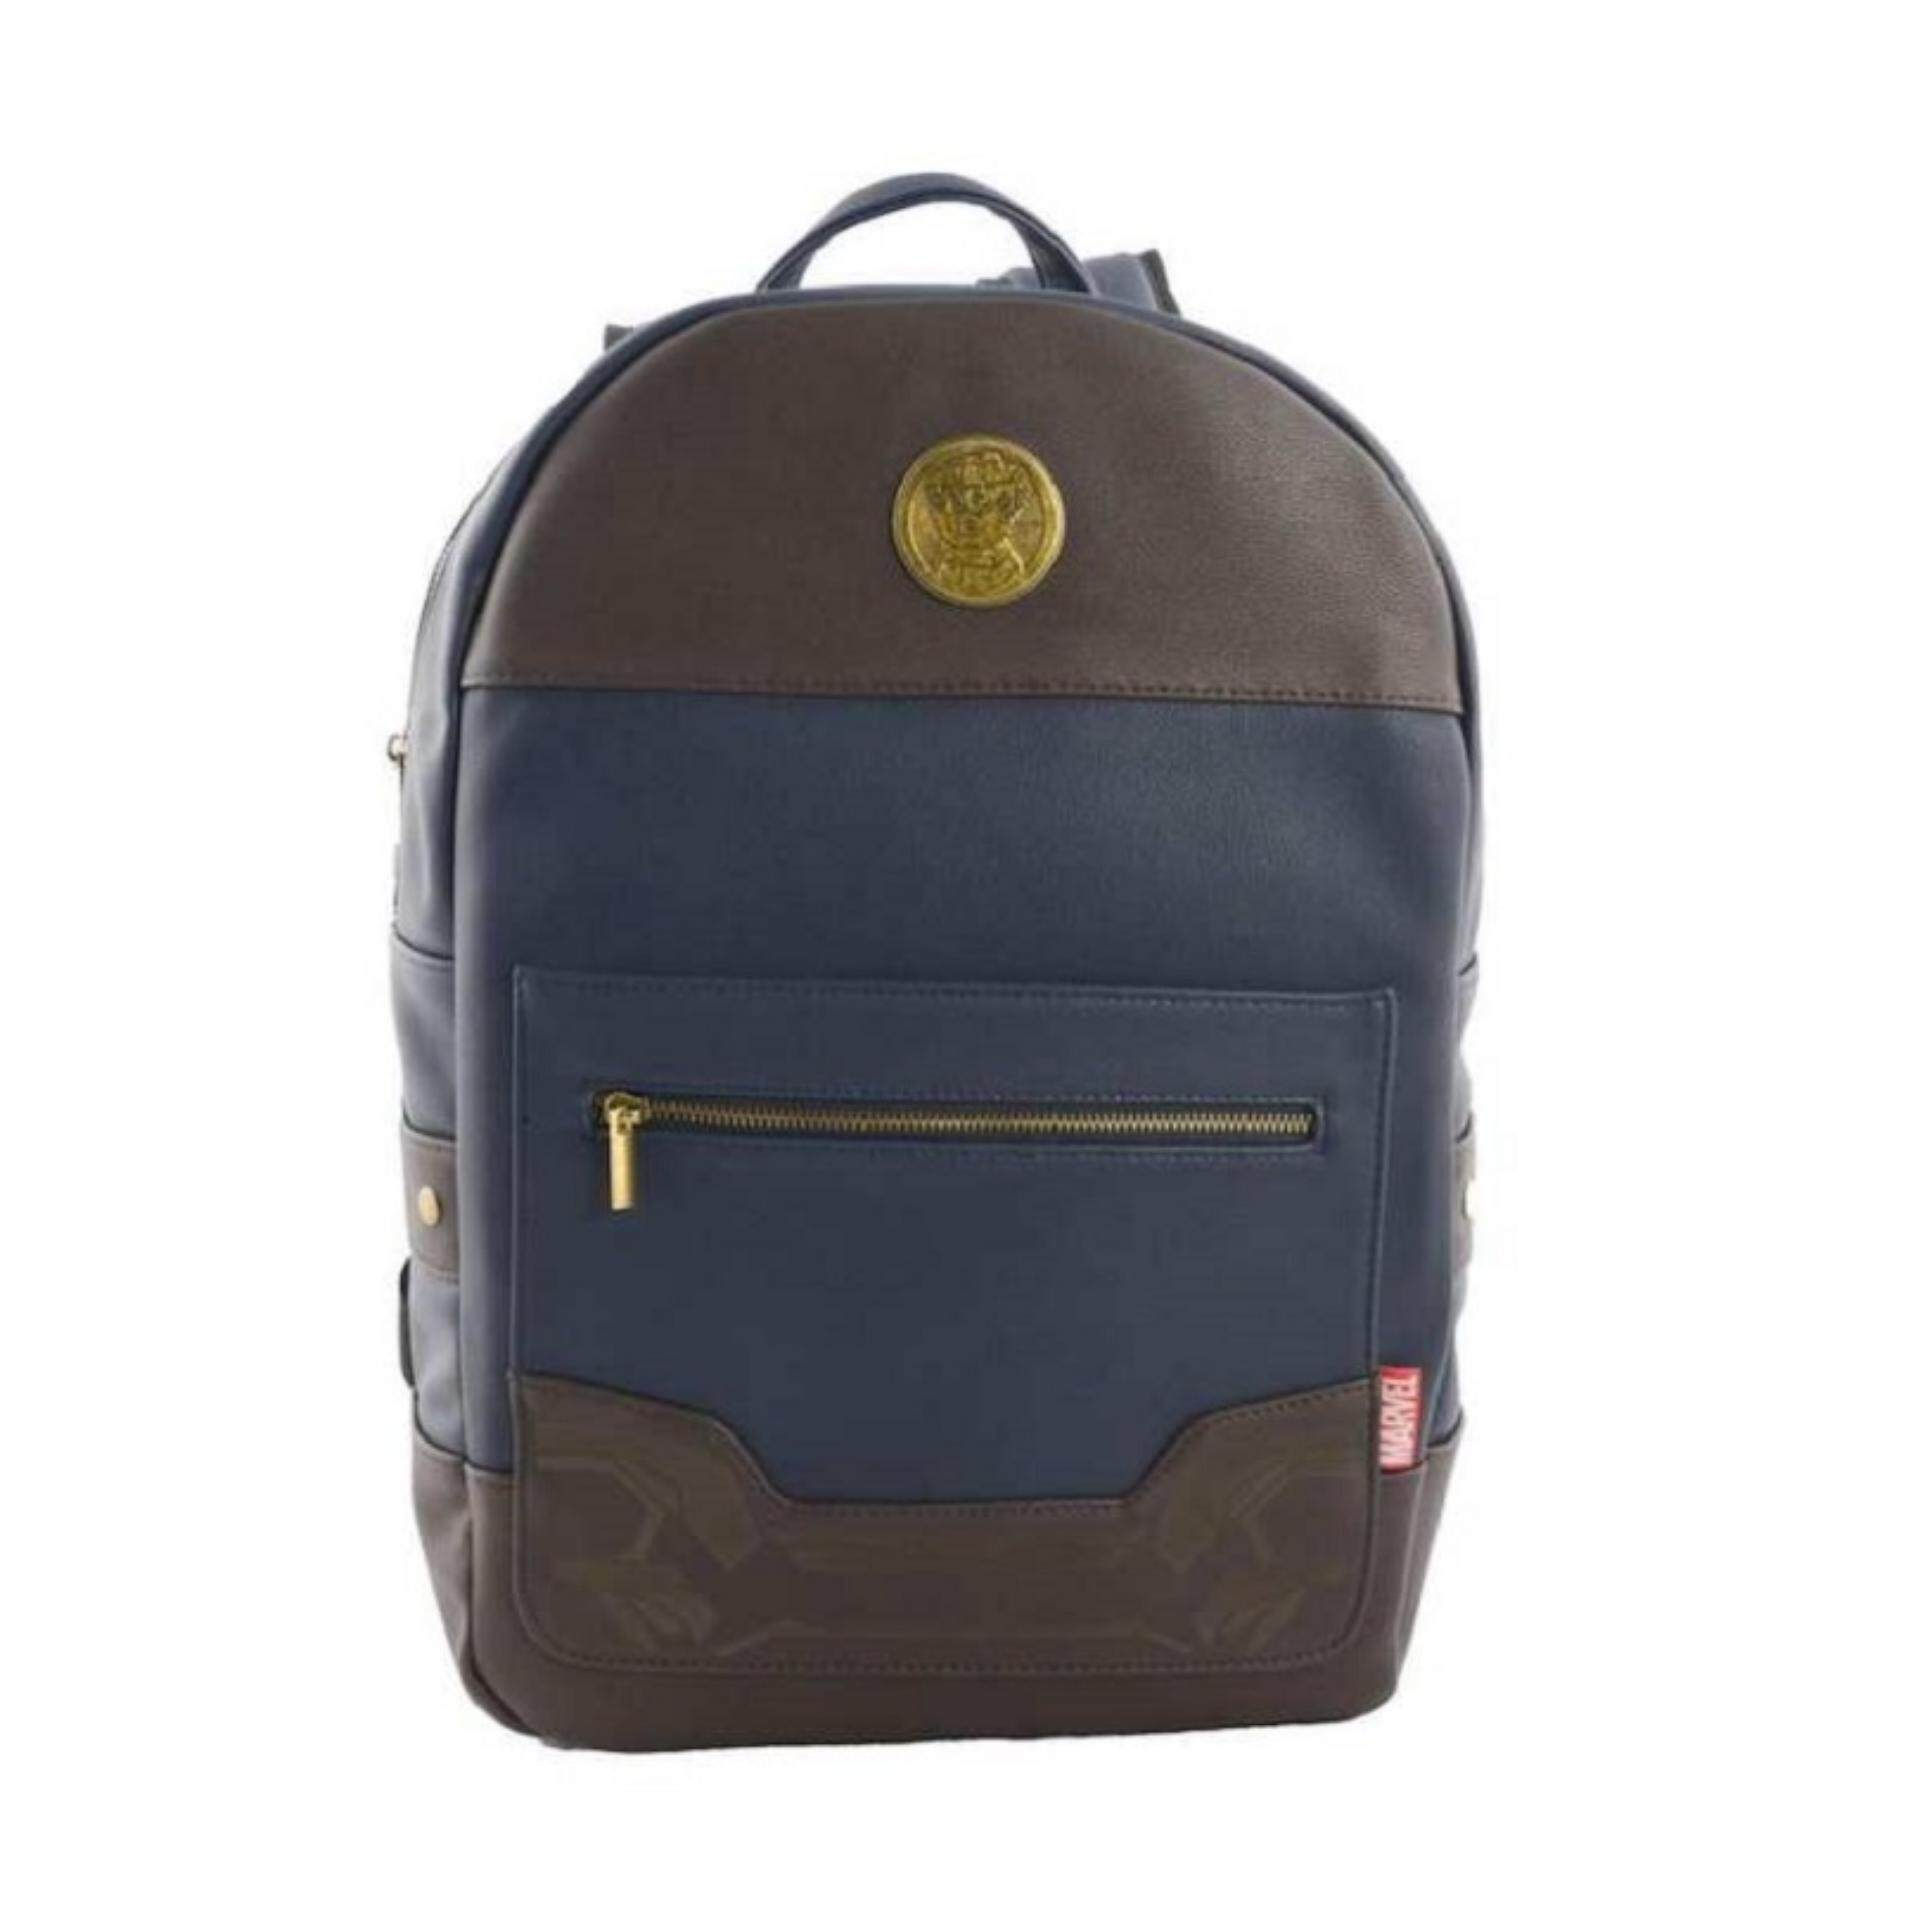 Marvel Avengers Infinity War Backpack 17.5 Inches - Dark Brown Colour